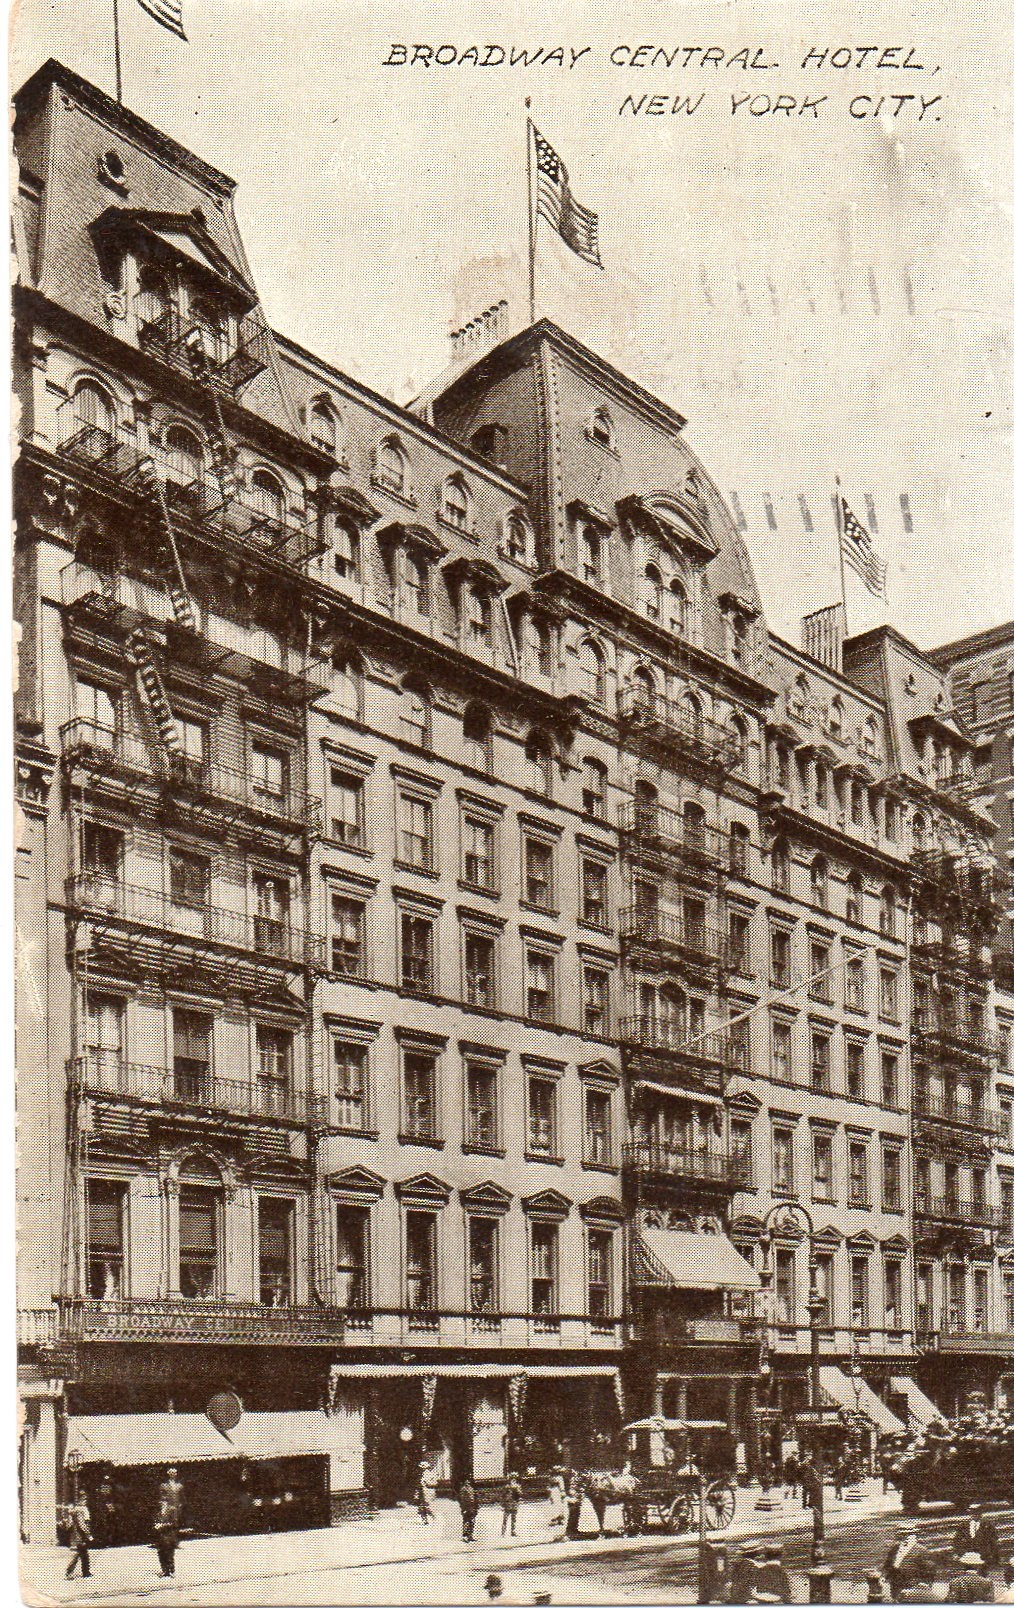 The collapse of broadway s grandest hotel ephemeral new york for Grand tableau new york